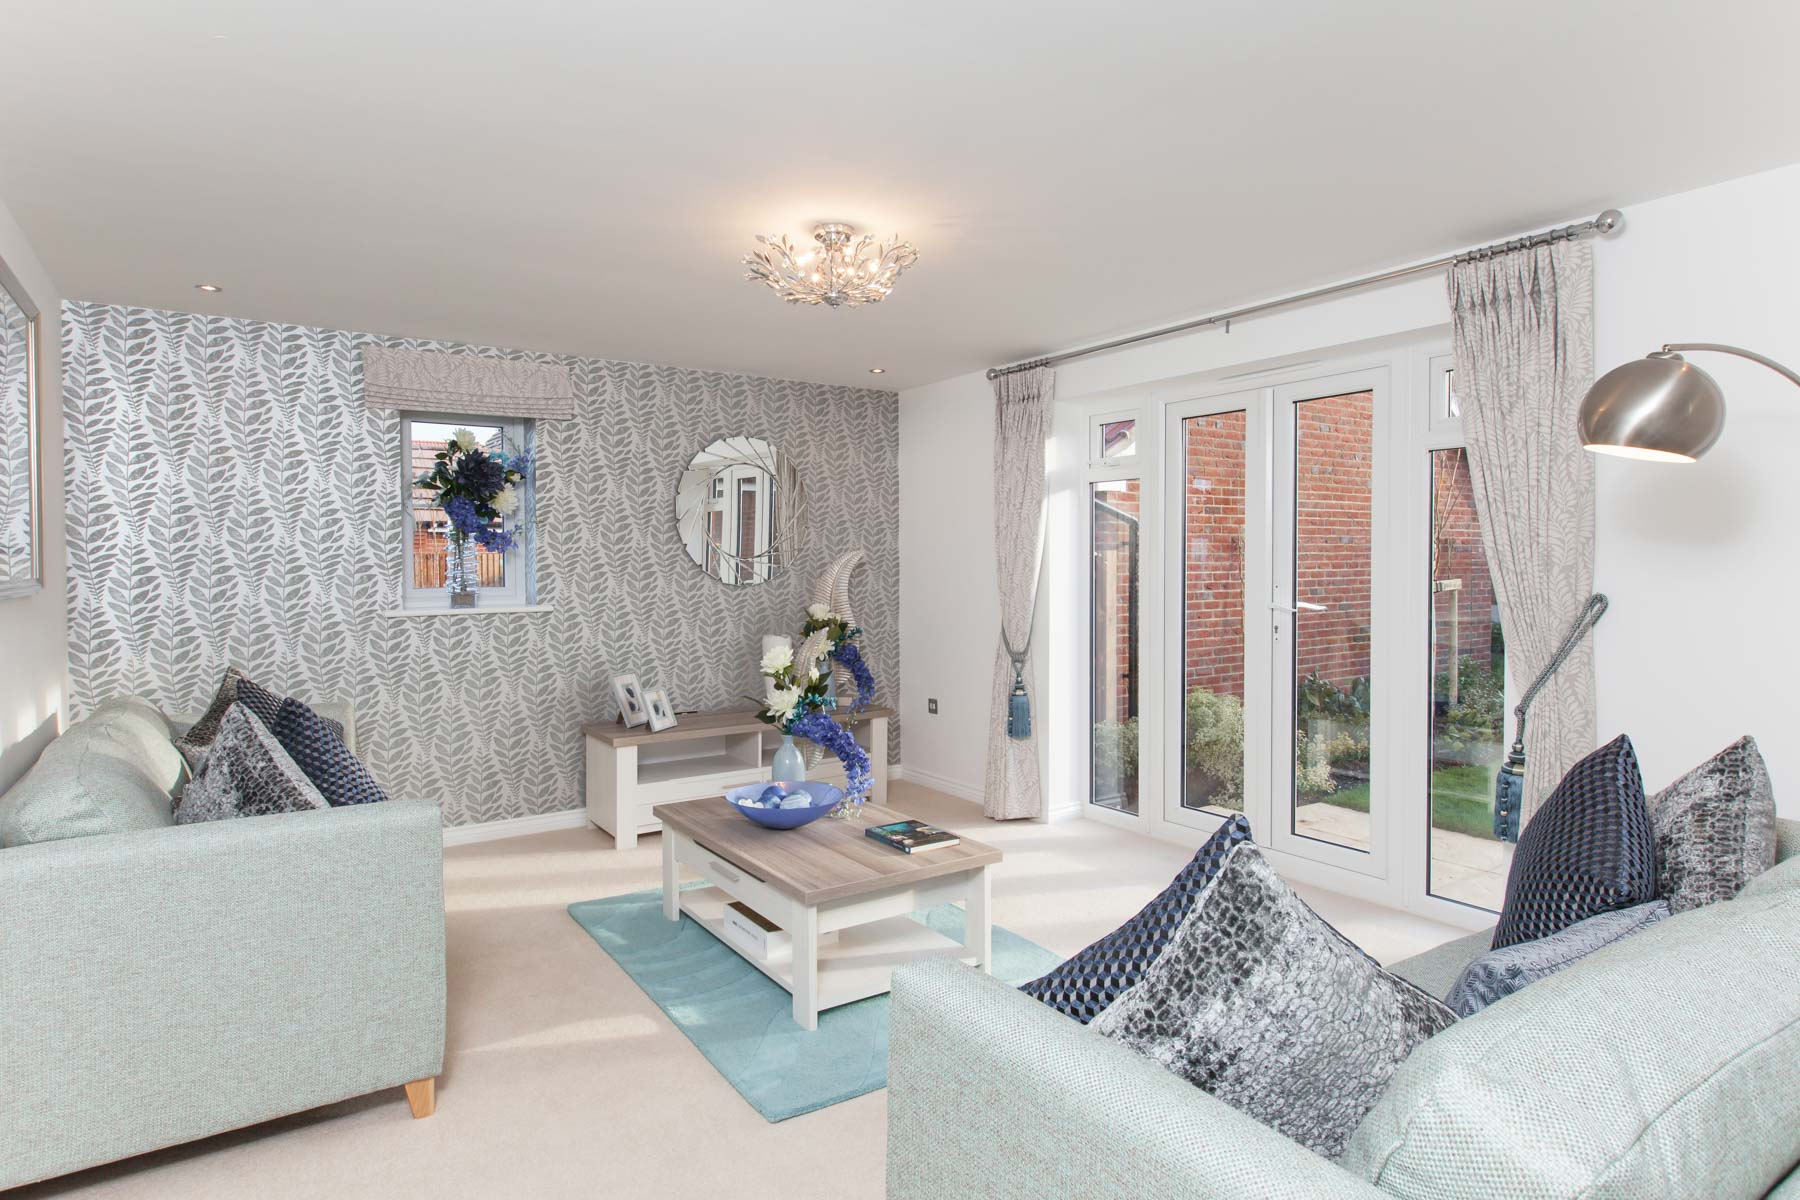 TW Exeter - Chy Ryn Parc - Thornford example living room